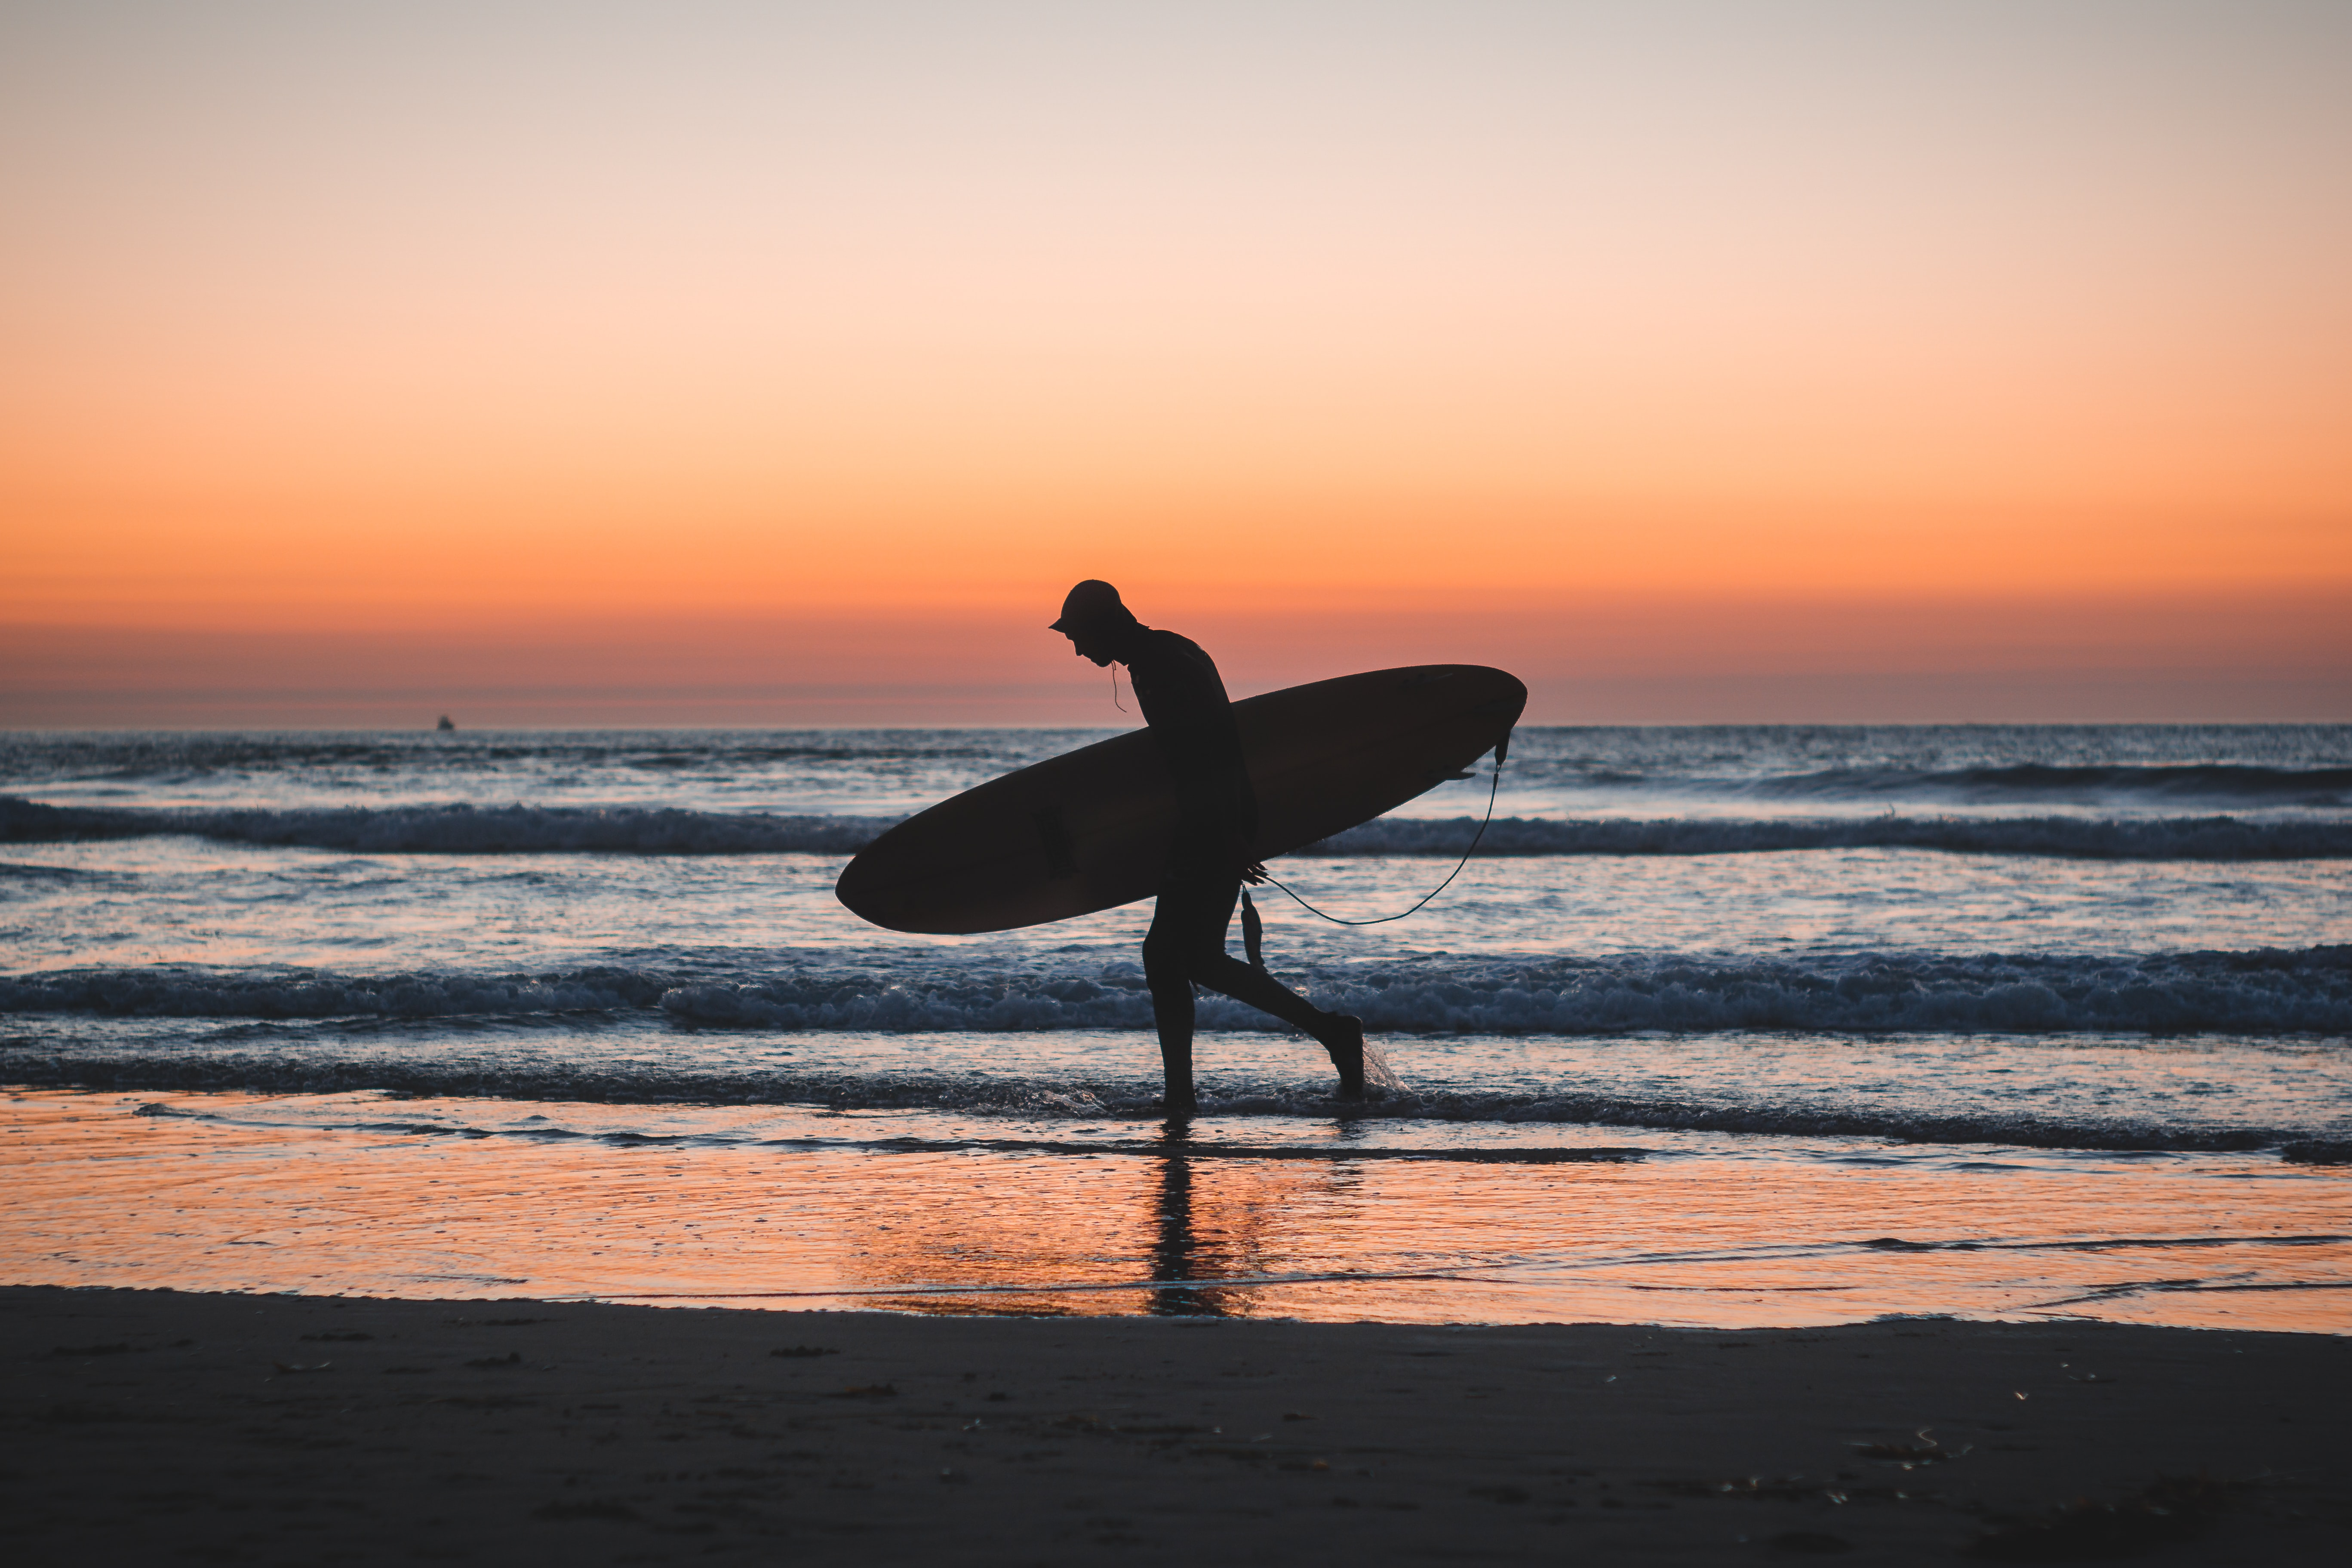 silhouette photo of person holding surfboard near shore